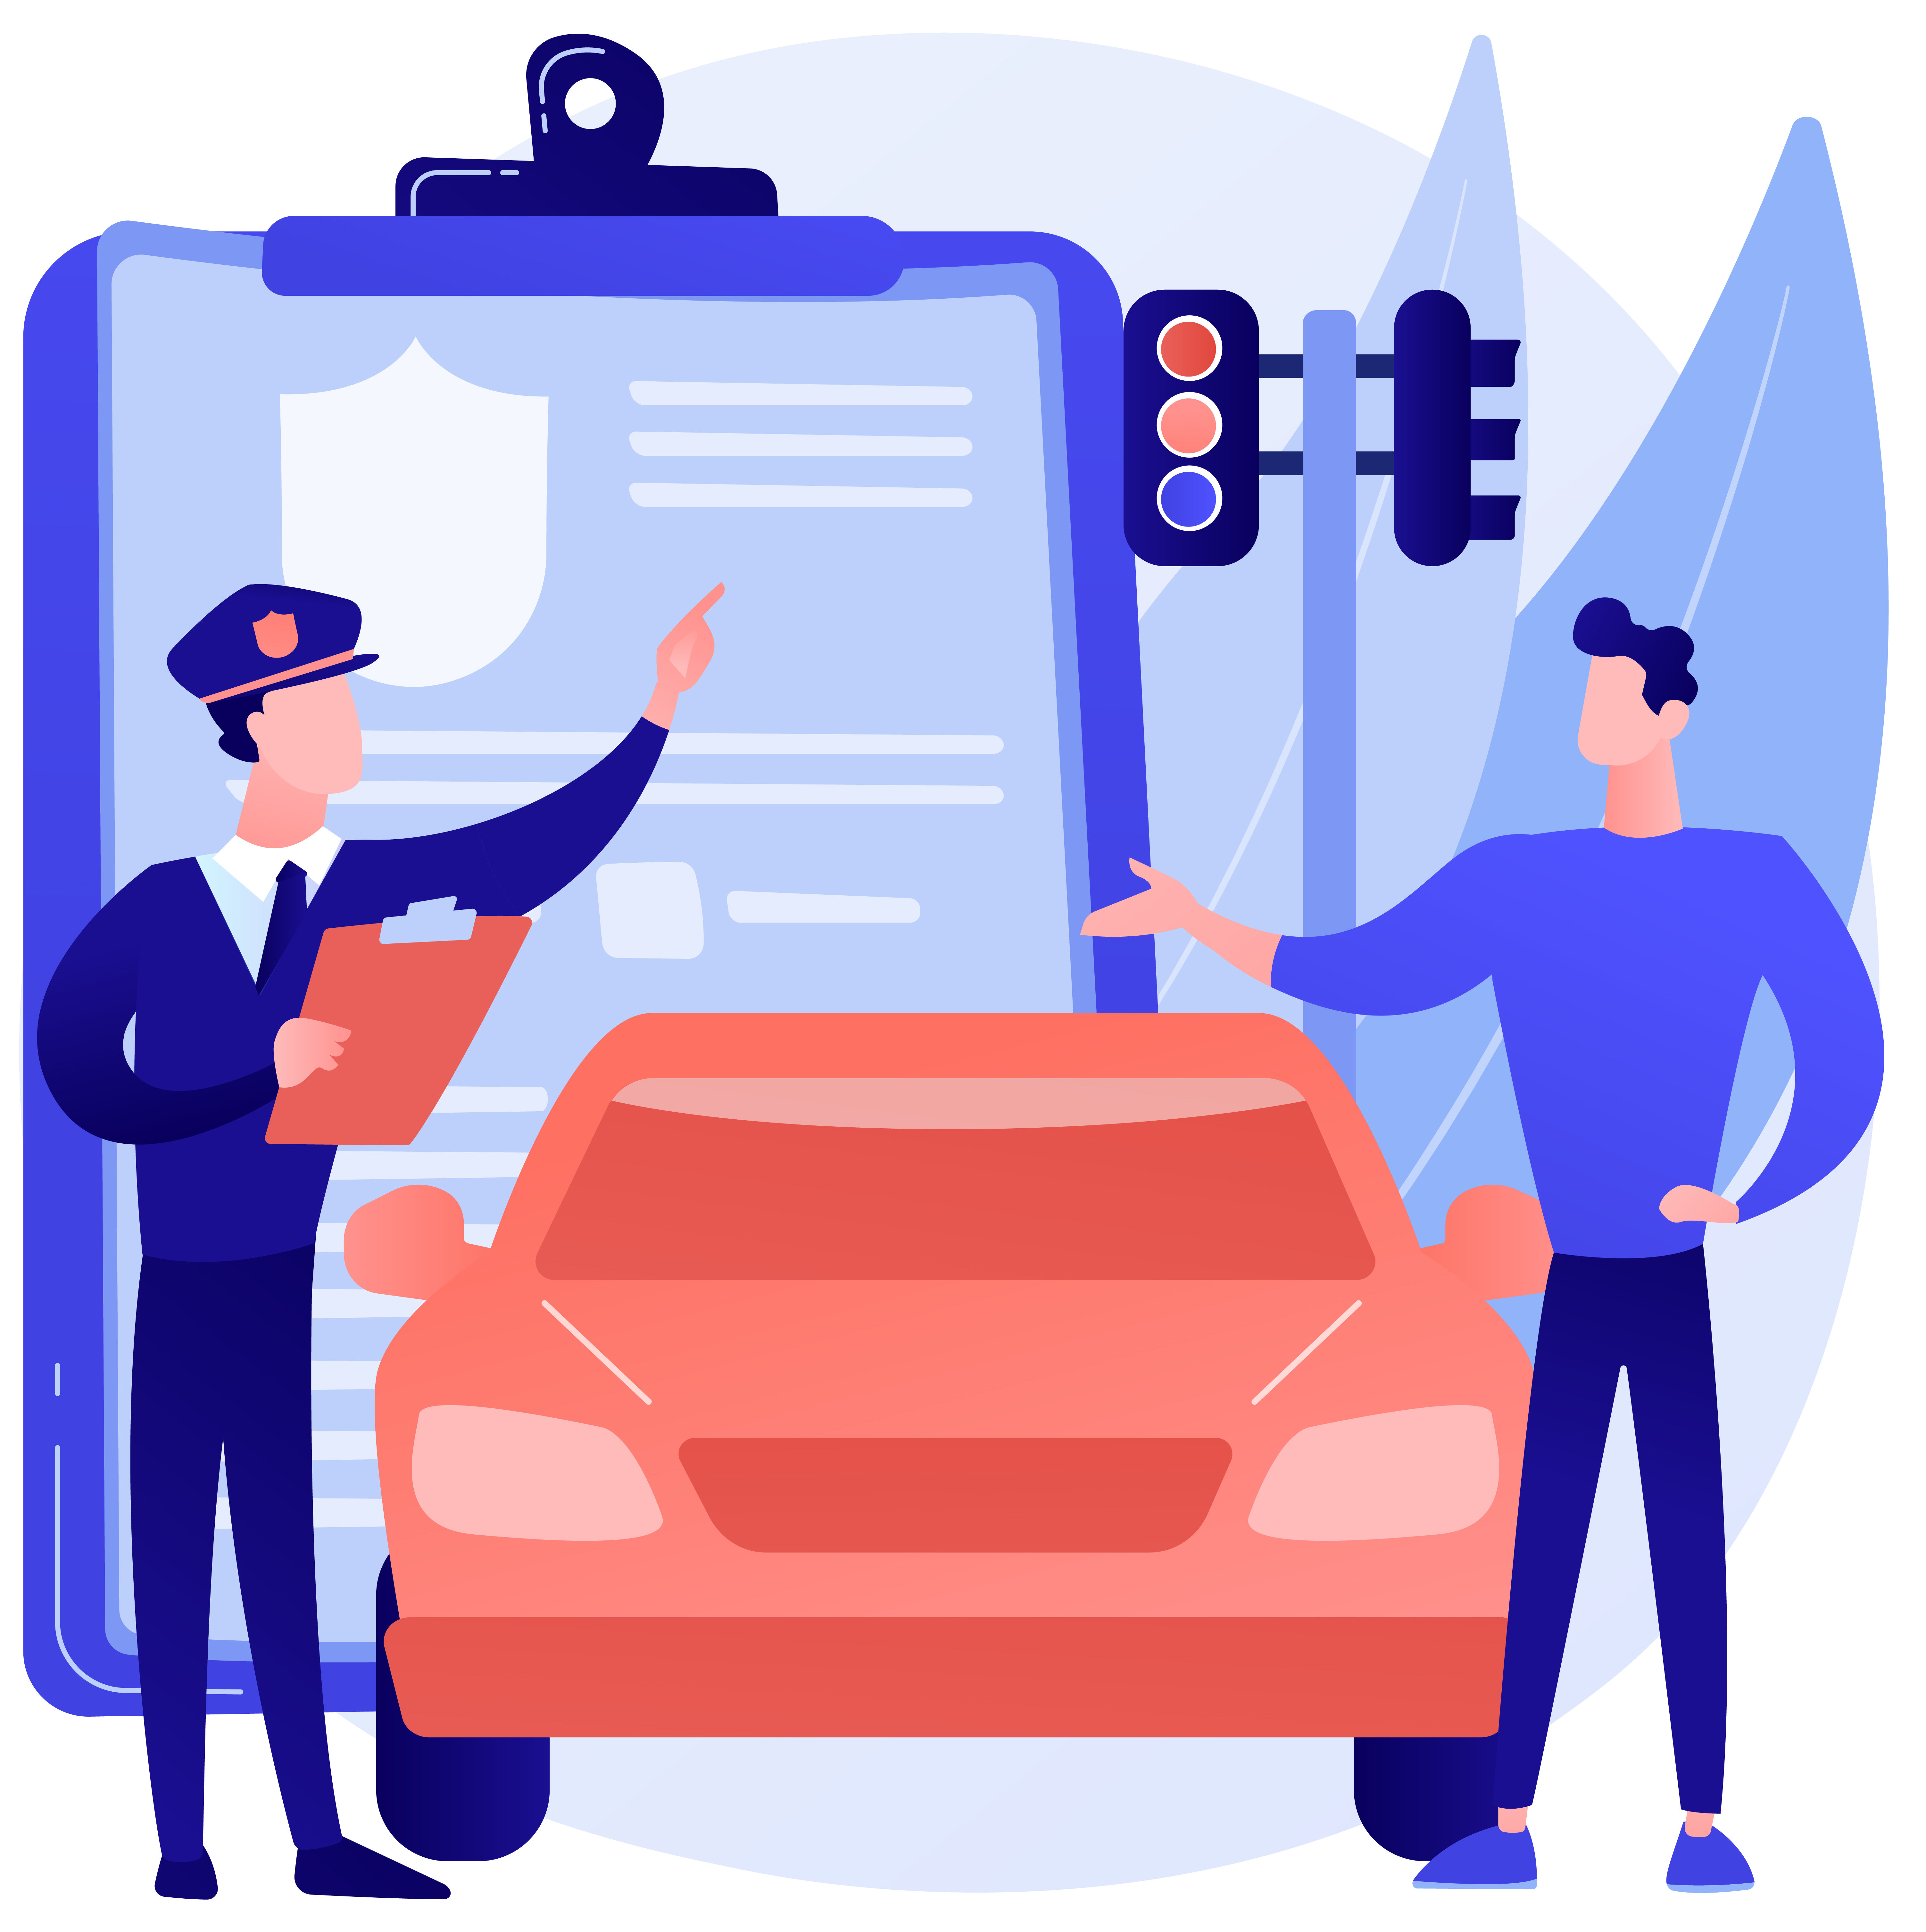 Traffic fine abstract concept vector illustration. Traffic law violation, speeding fine ticket, pay online, driving rules offence, speed control, red light camera, stop sign abstract metaphor.